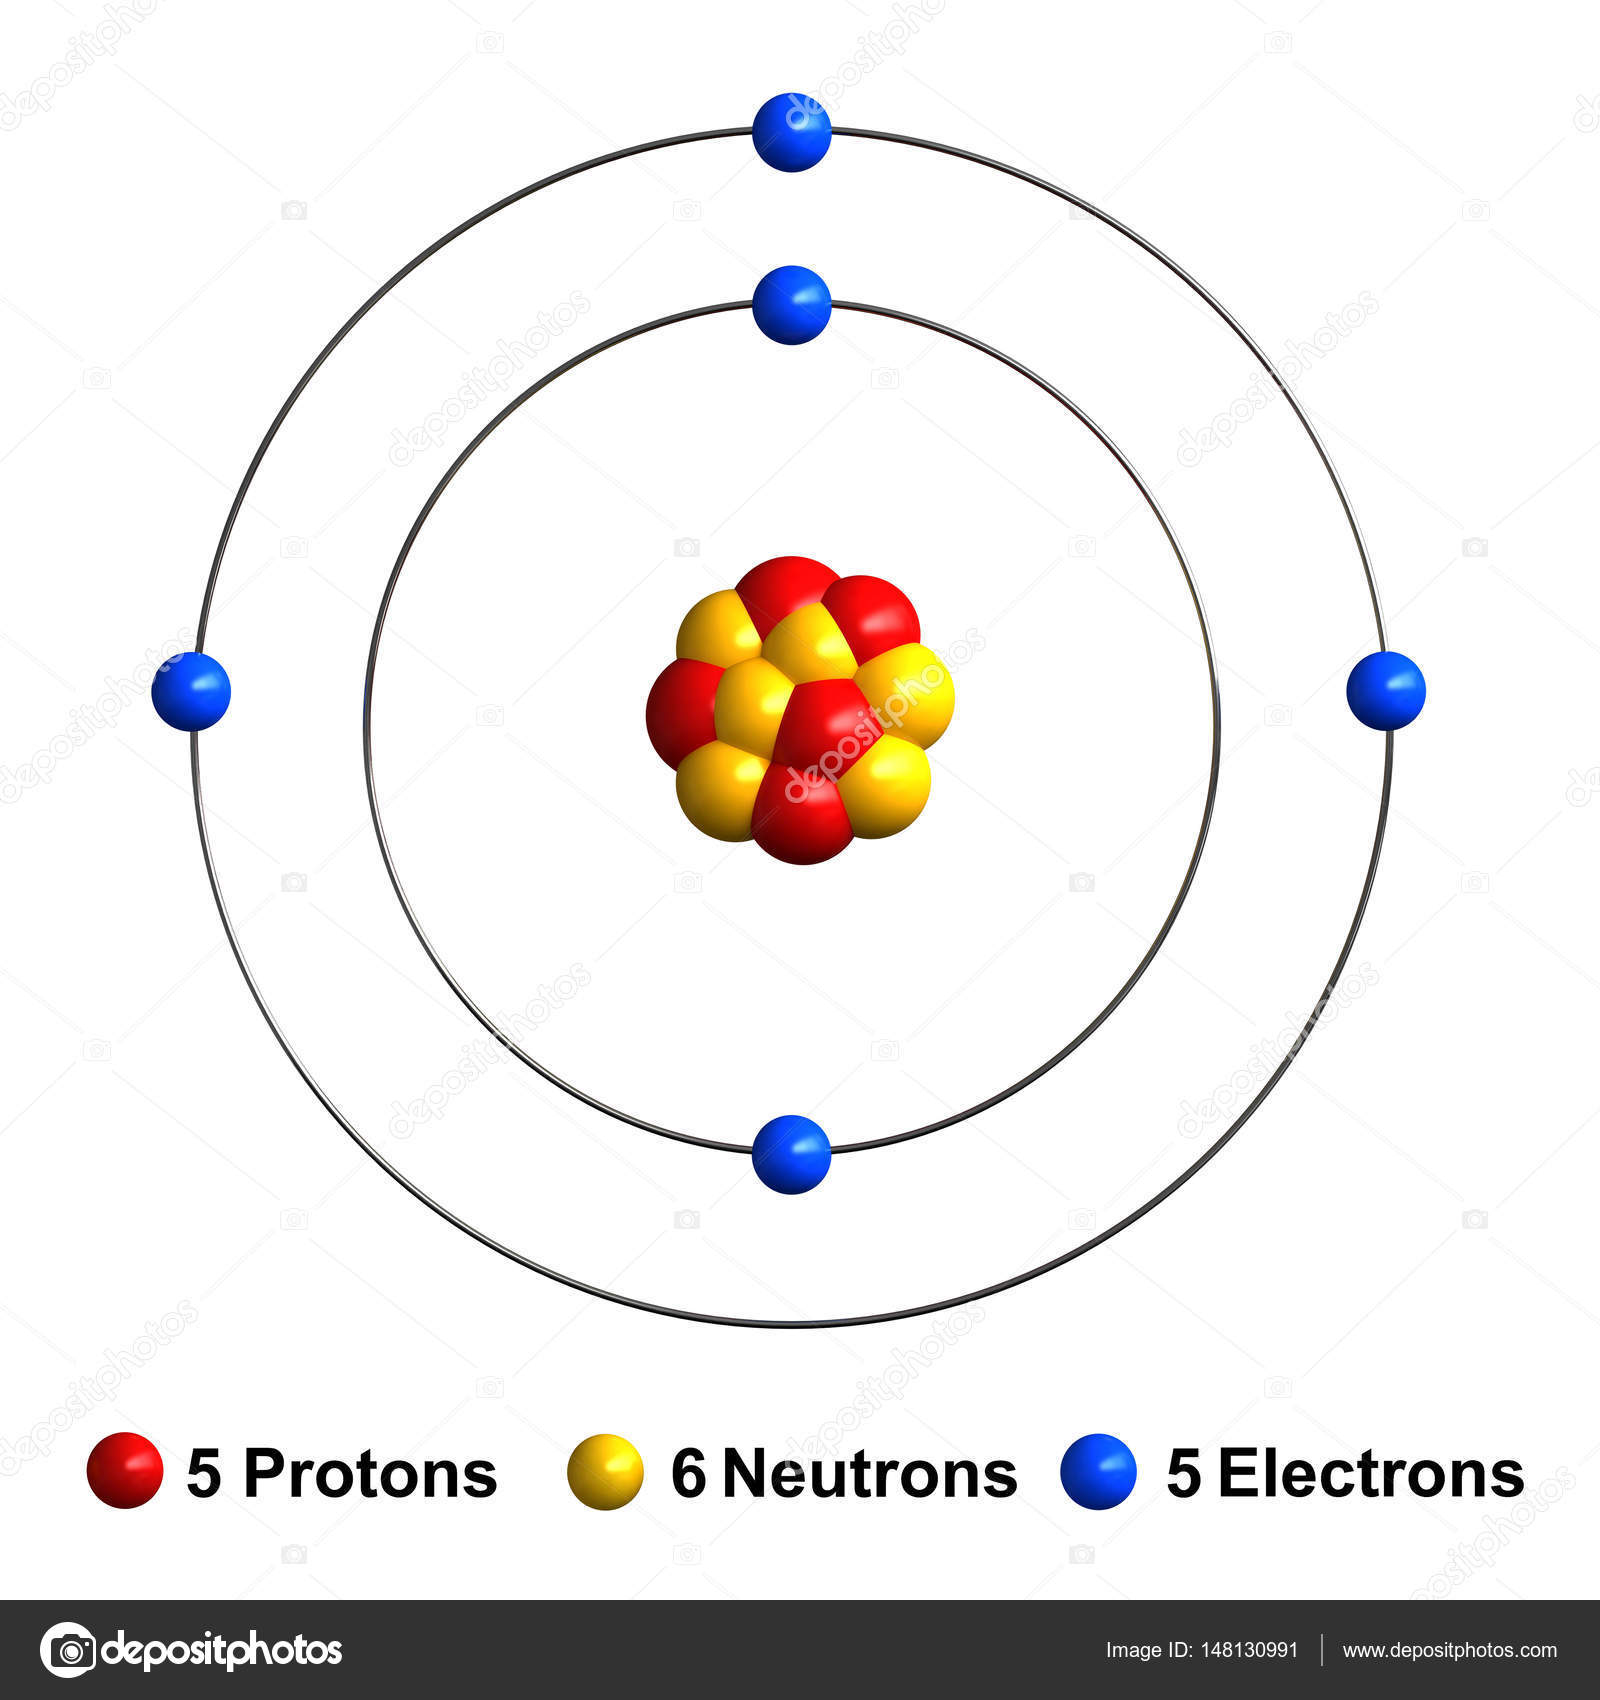 Labelled Diagram Of An Atom